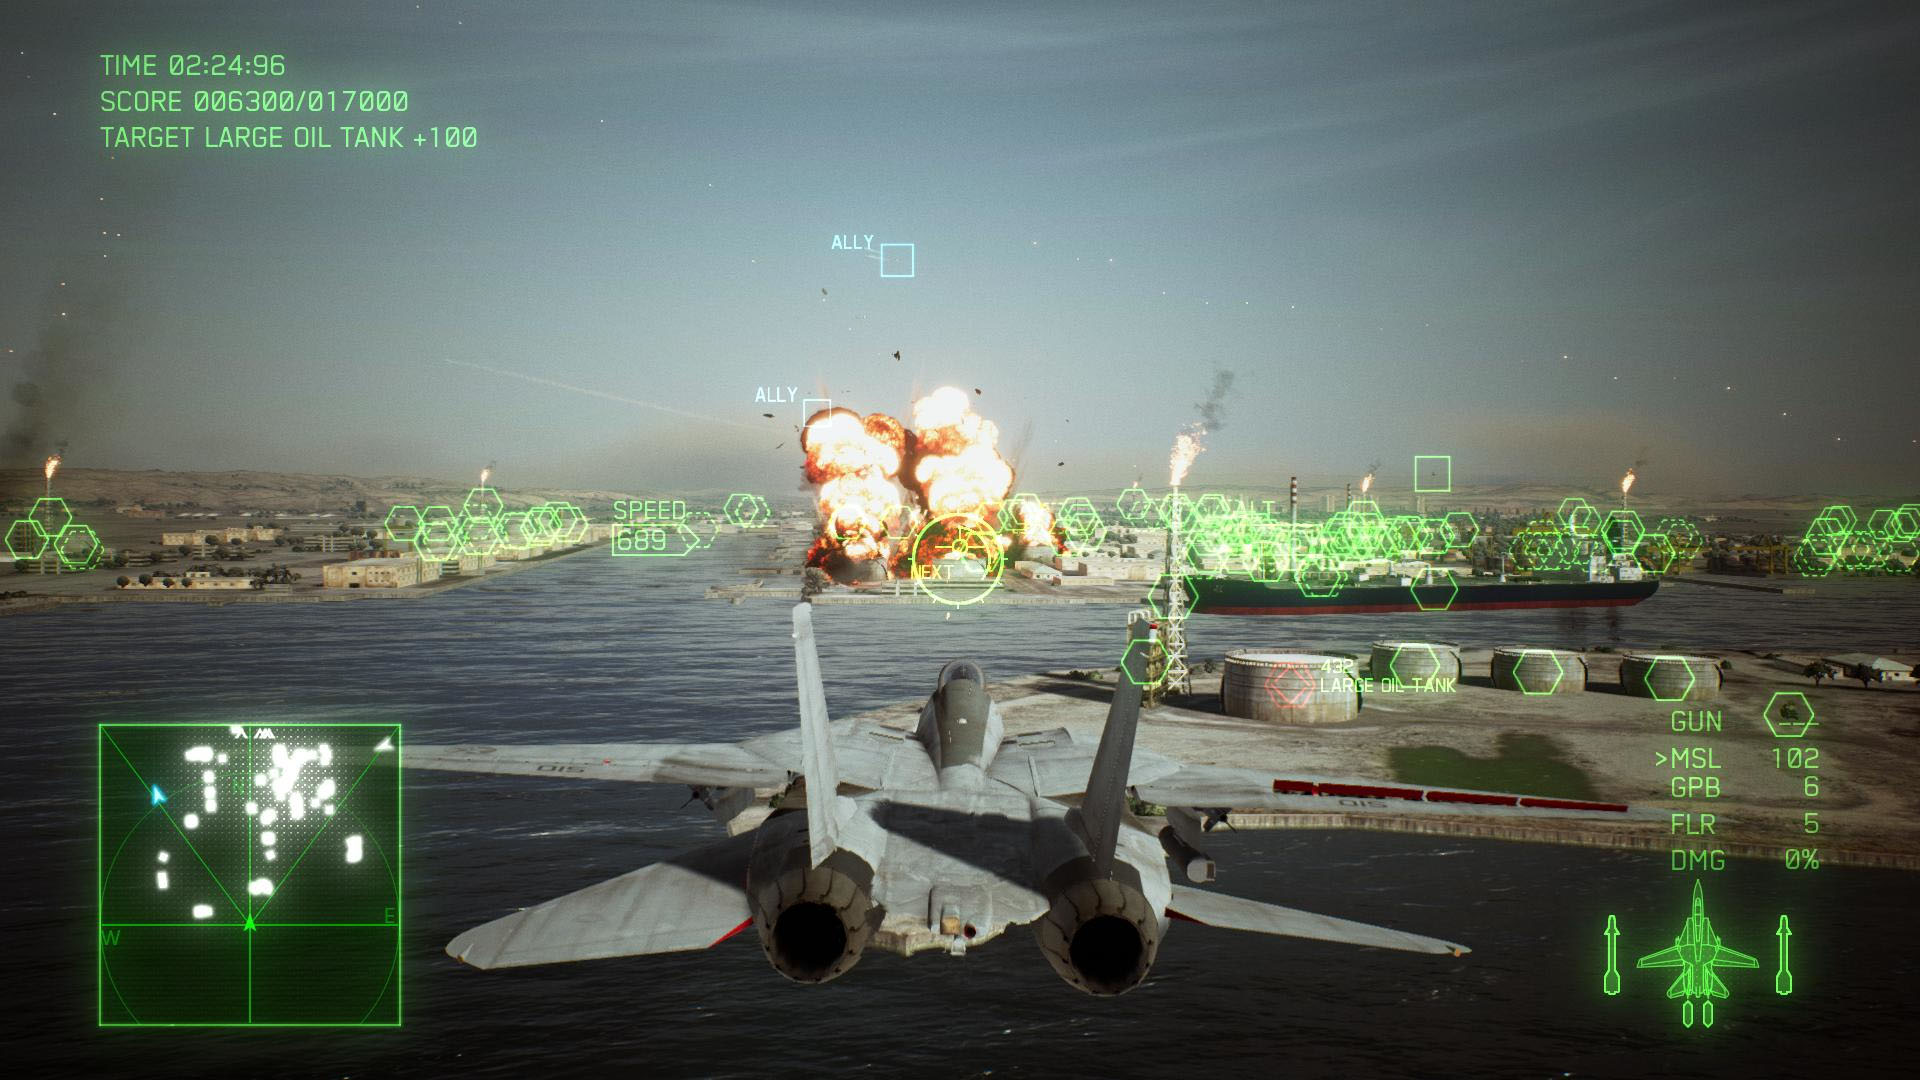 Plane Fighting Games >> Ace Combat 7: Skies Unknown PC review – thrills marred by frustration | PCGamesN